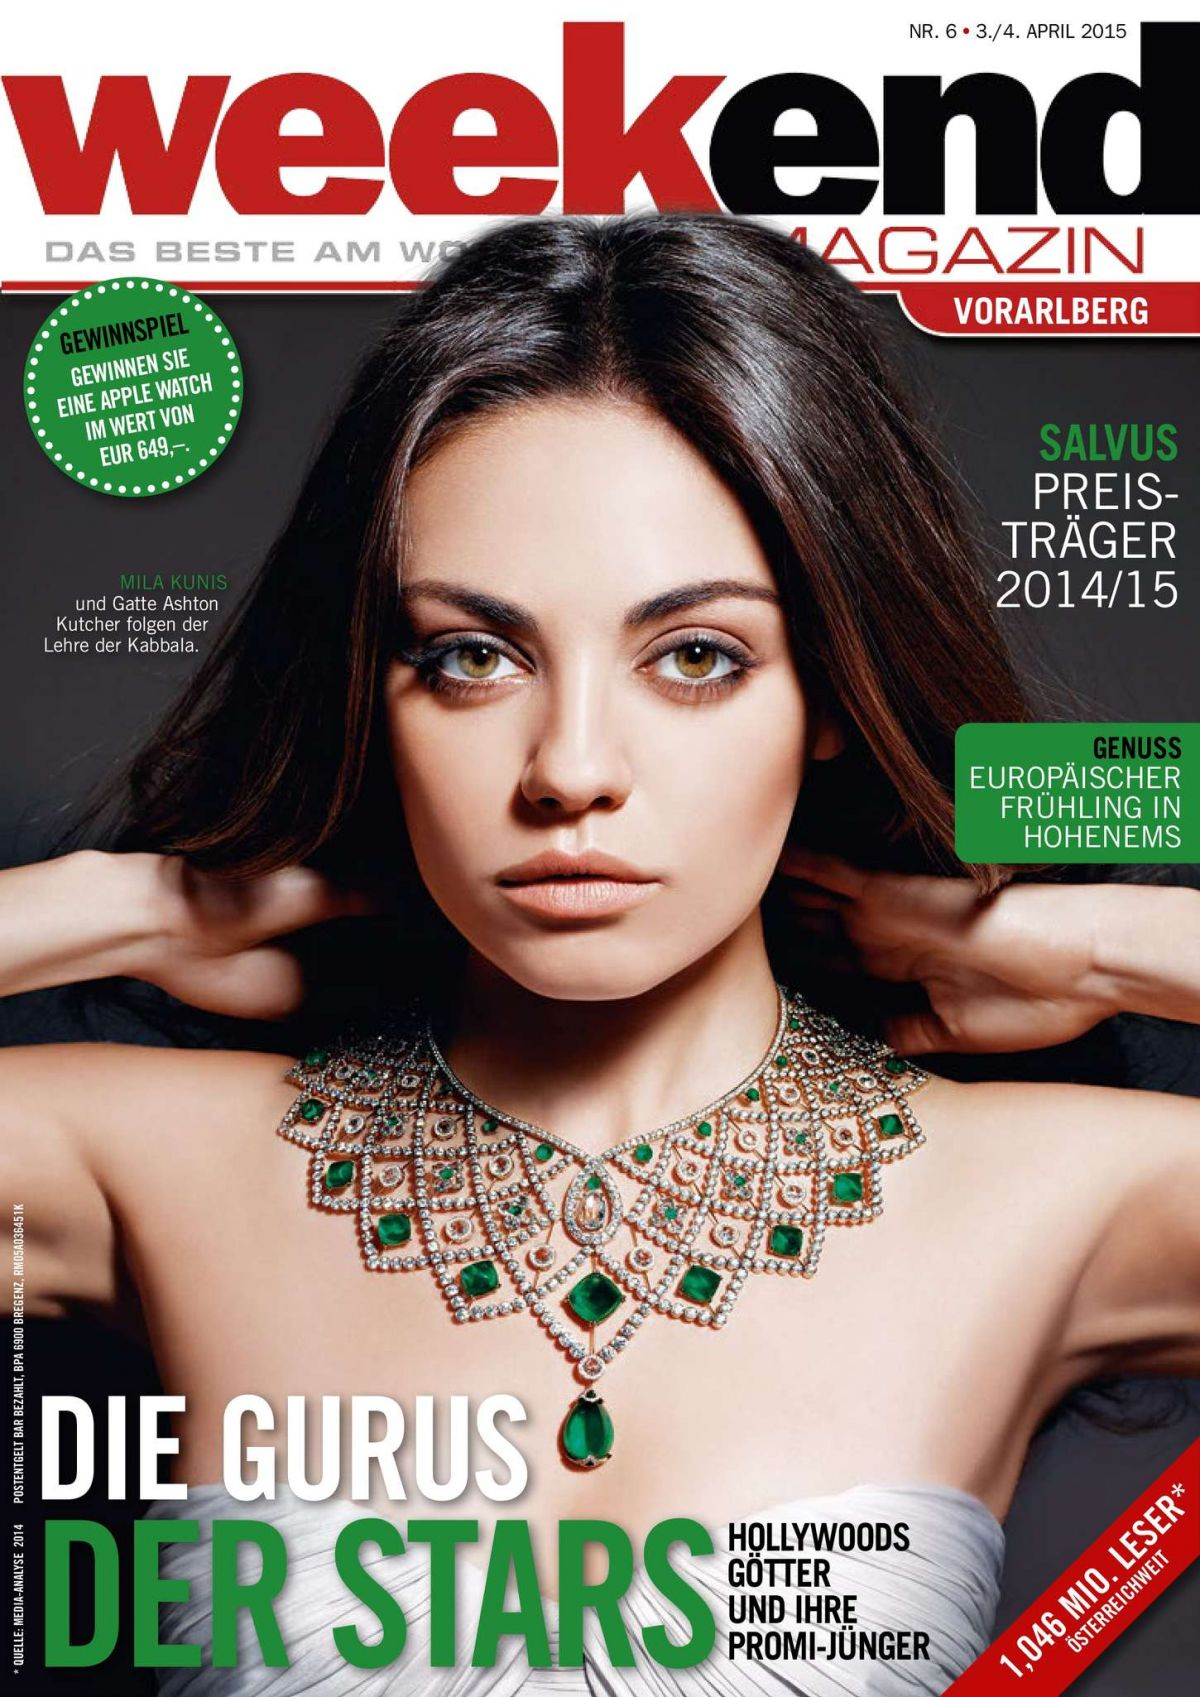 MILA KUNIS on the Cover of Weekend Magazine, April 2015 Issue